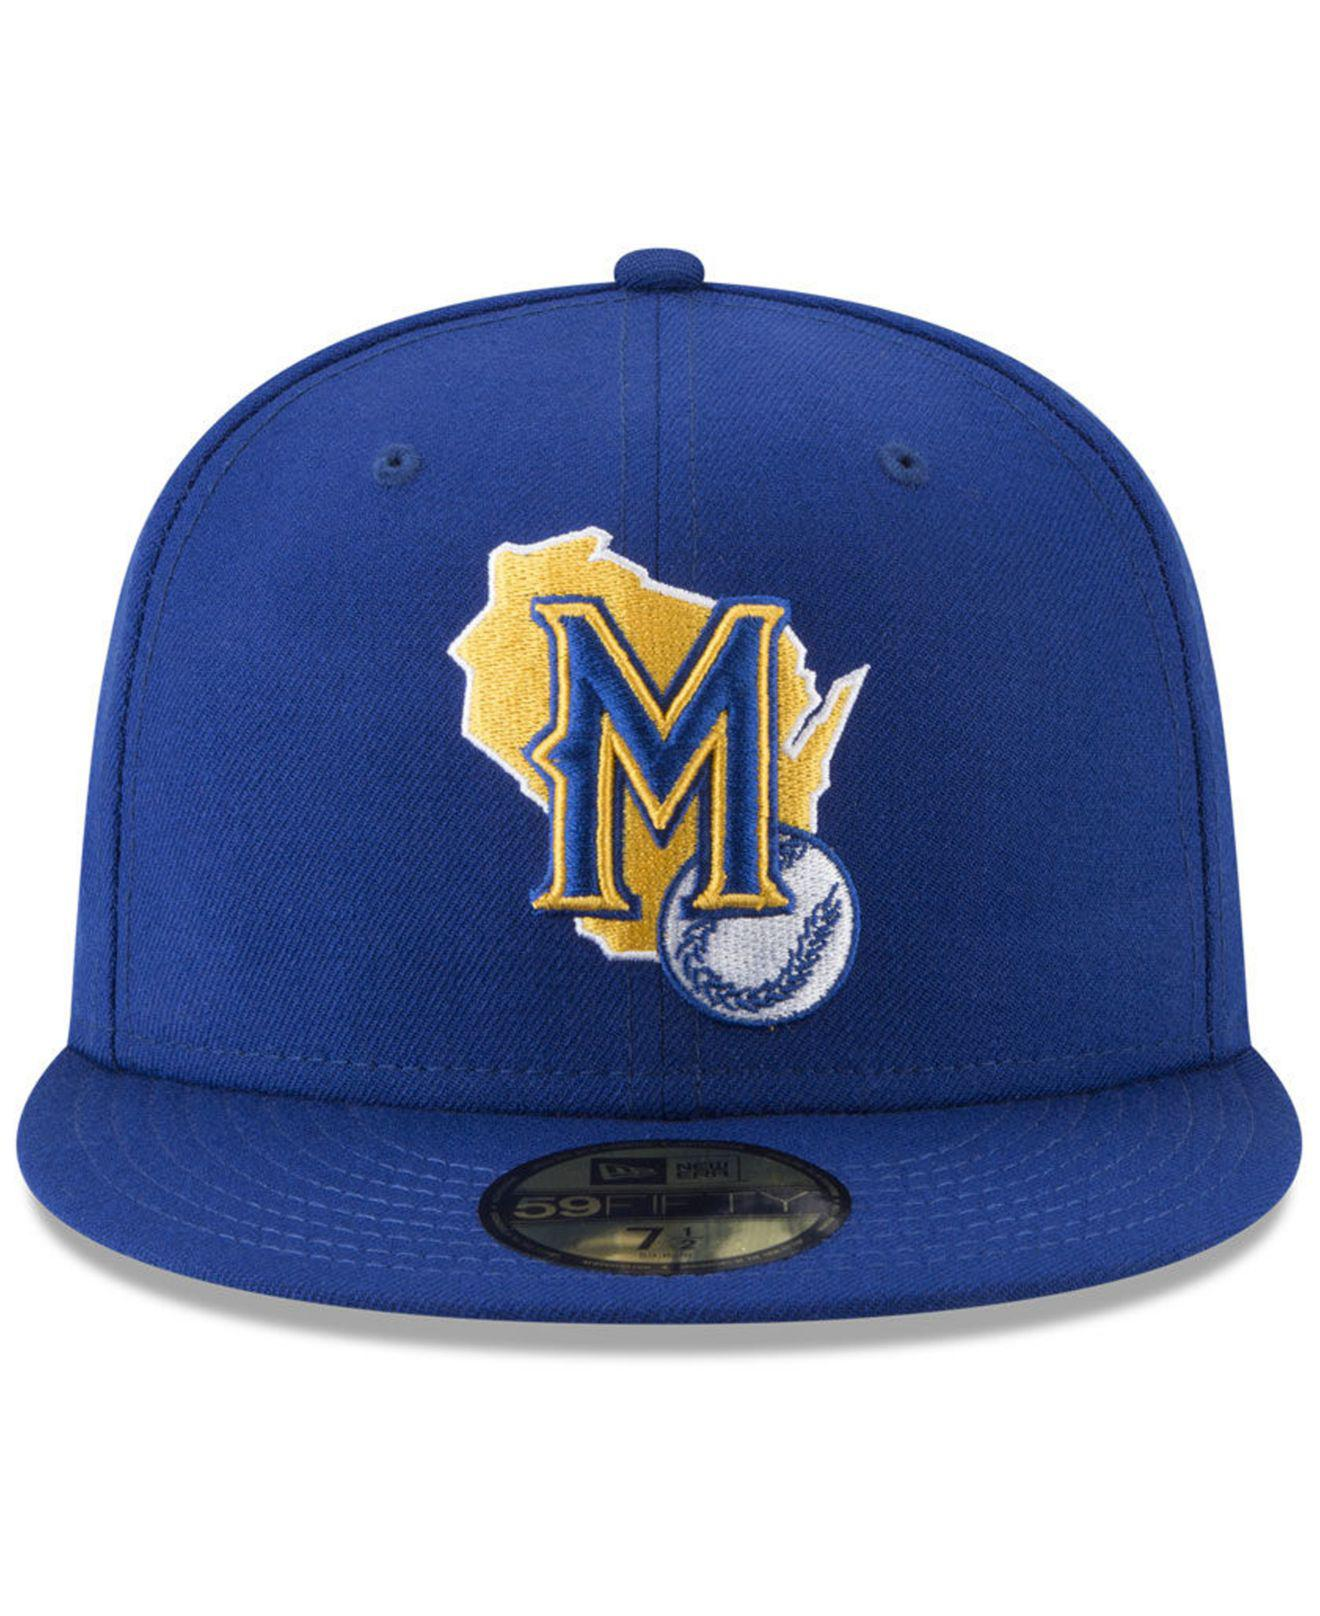 Lyst - Ktz Milwaukee Brewers Batting Practice Wool Flip 59fifty Fitted Cap  in Blue for Men 80c2eef2f6c7